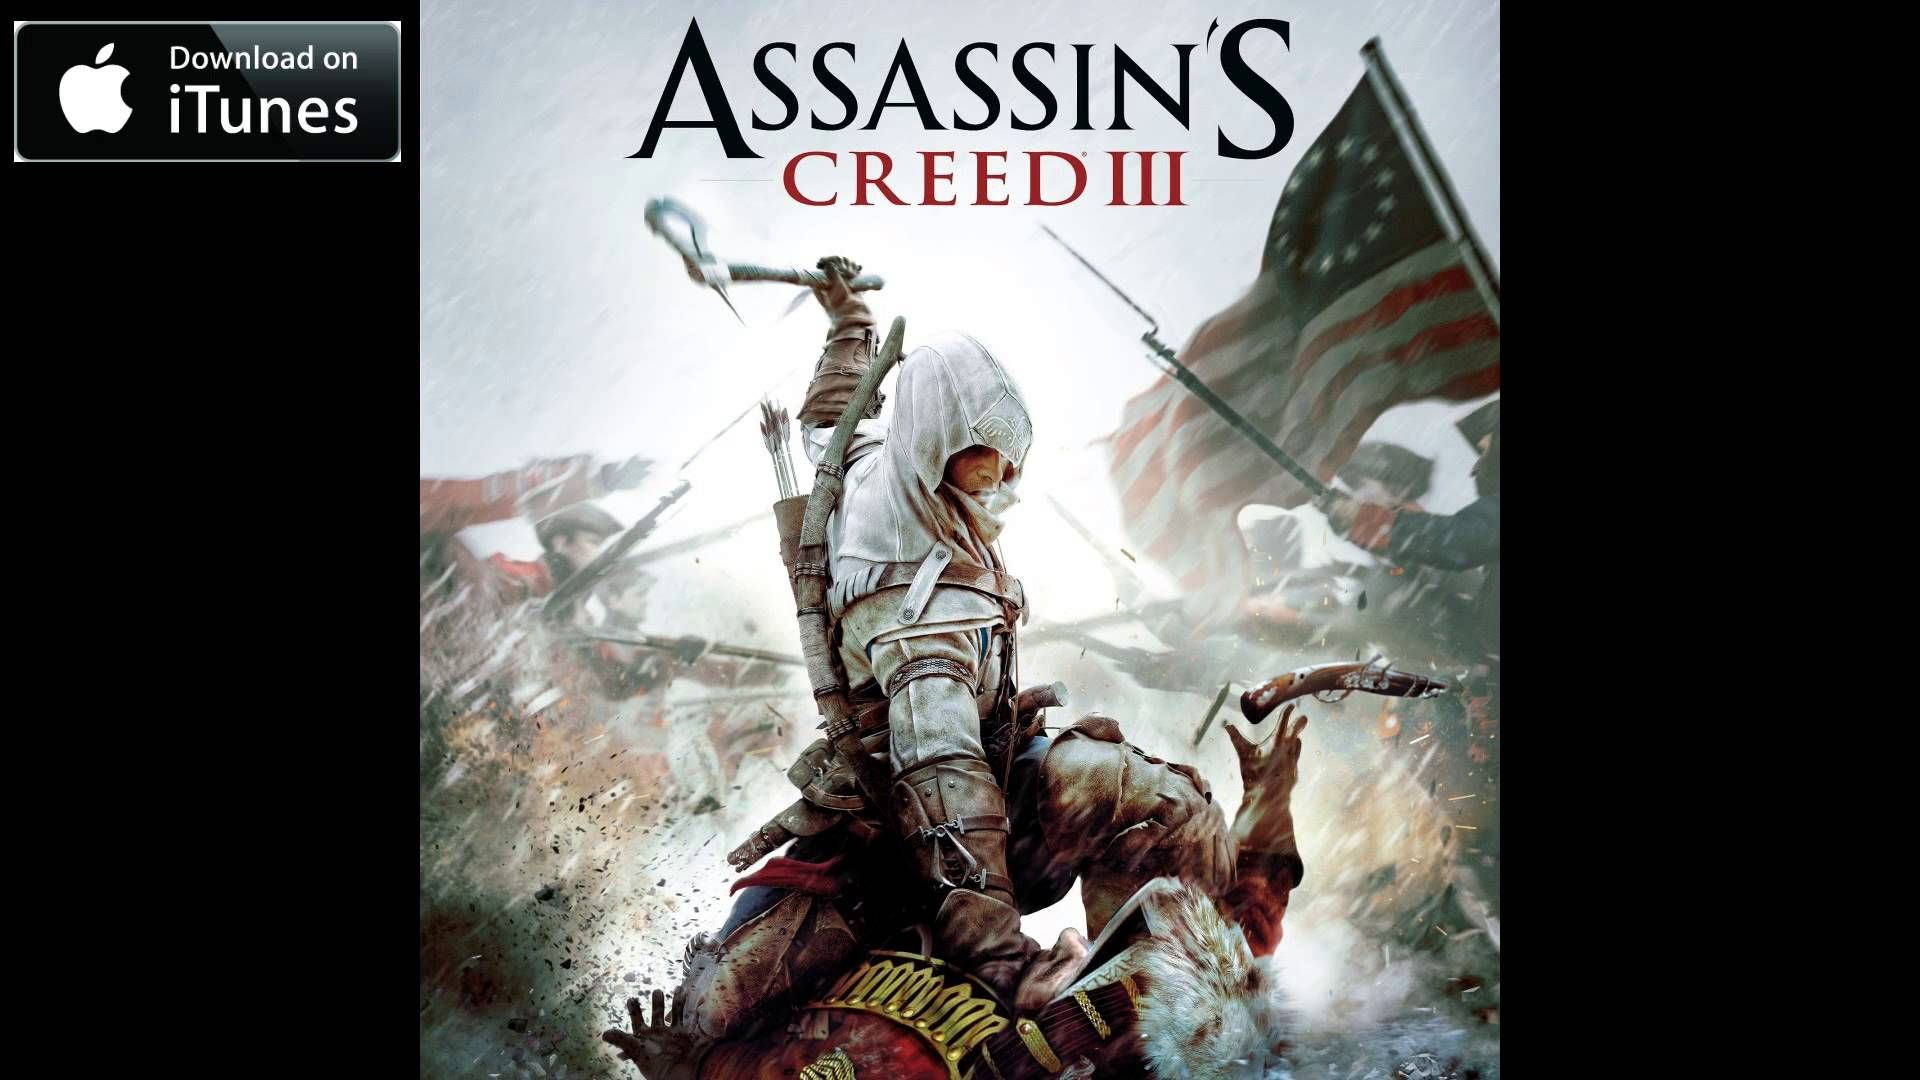 Assassin's Creed 3 / Lorne Balfe - Through the Frontier (Track 07)